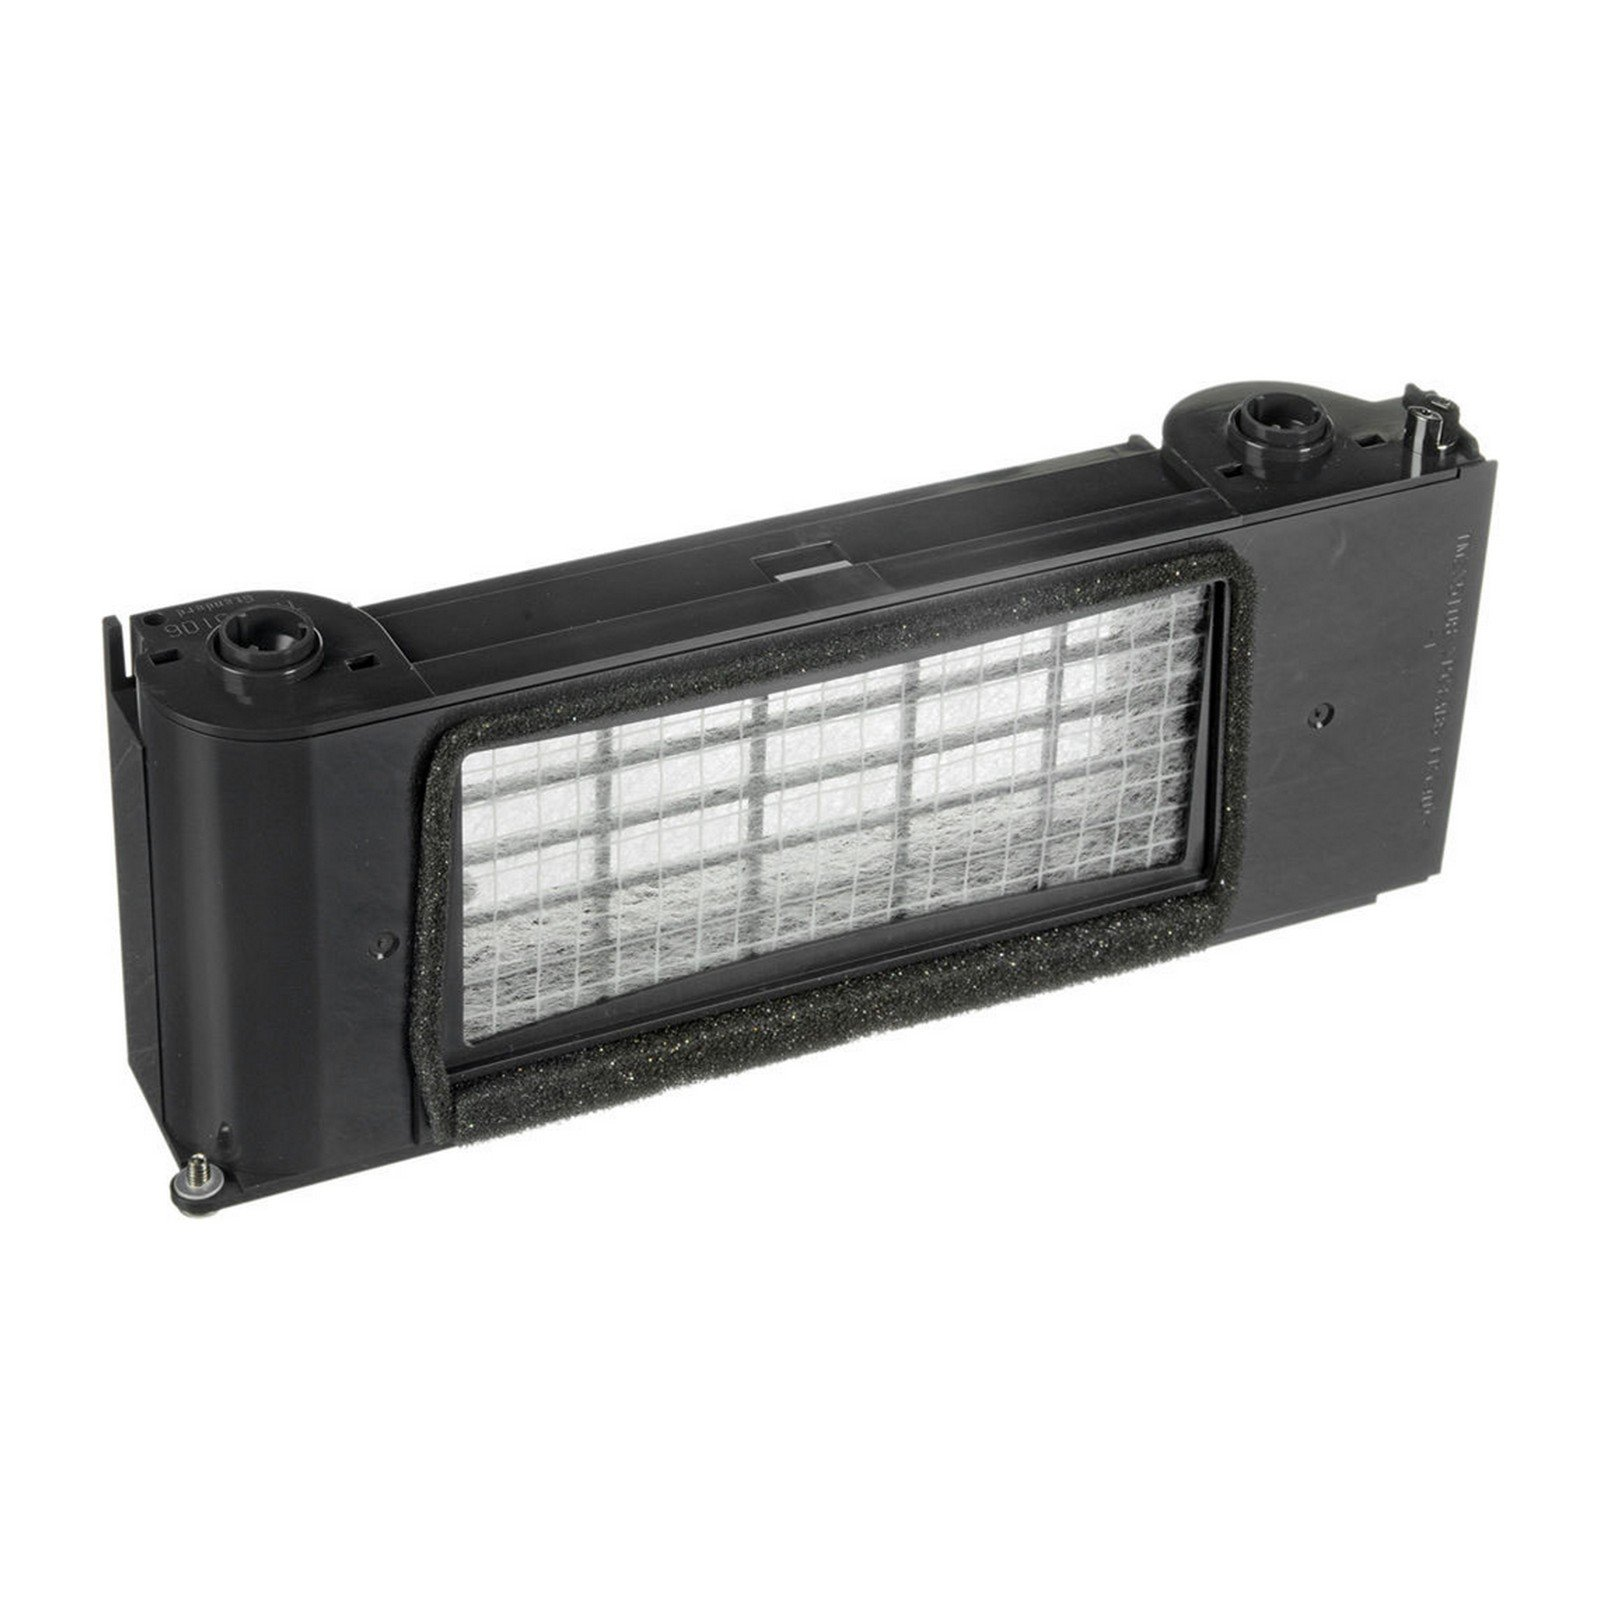 Panasonic ET-RFF100 | Auto Rolling Projector Filter for f100/200 Series